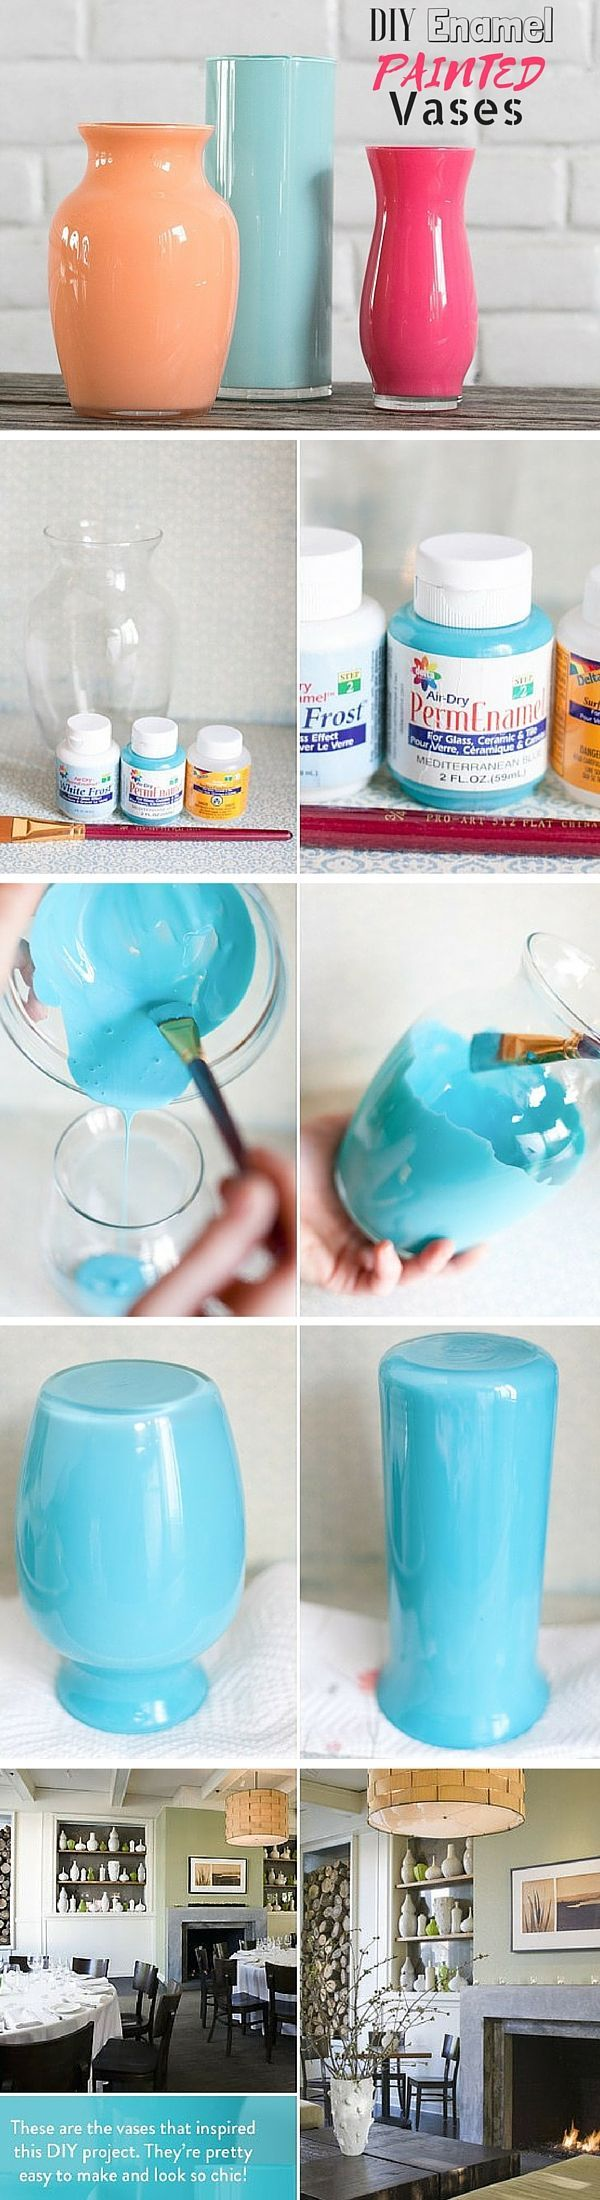 Check out the tutorial: #DIY Enamel Painted Vases #crafts #decor♥✿♥ヅ @tonjaamenra